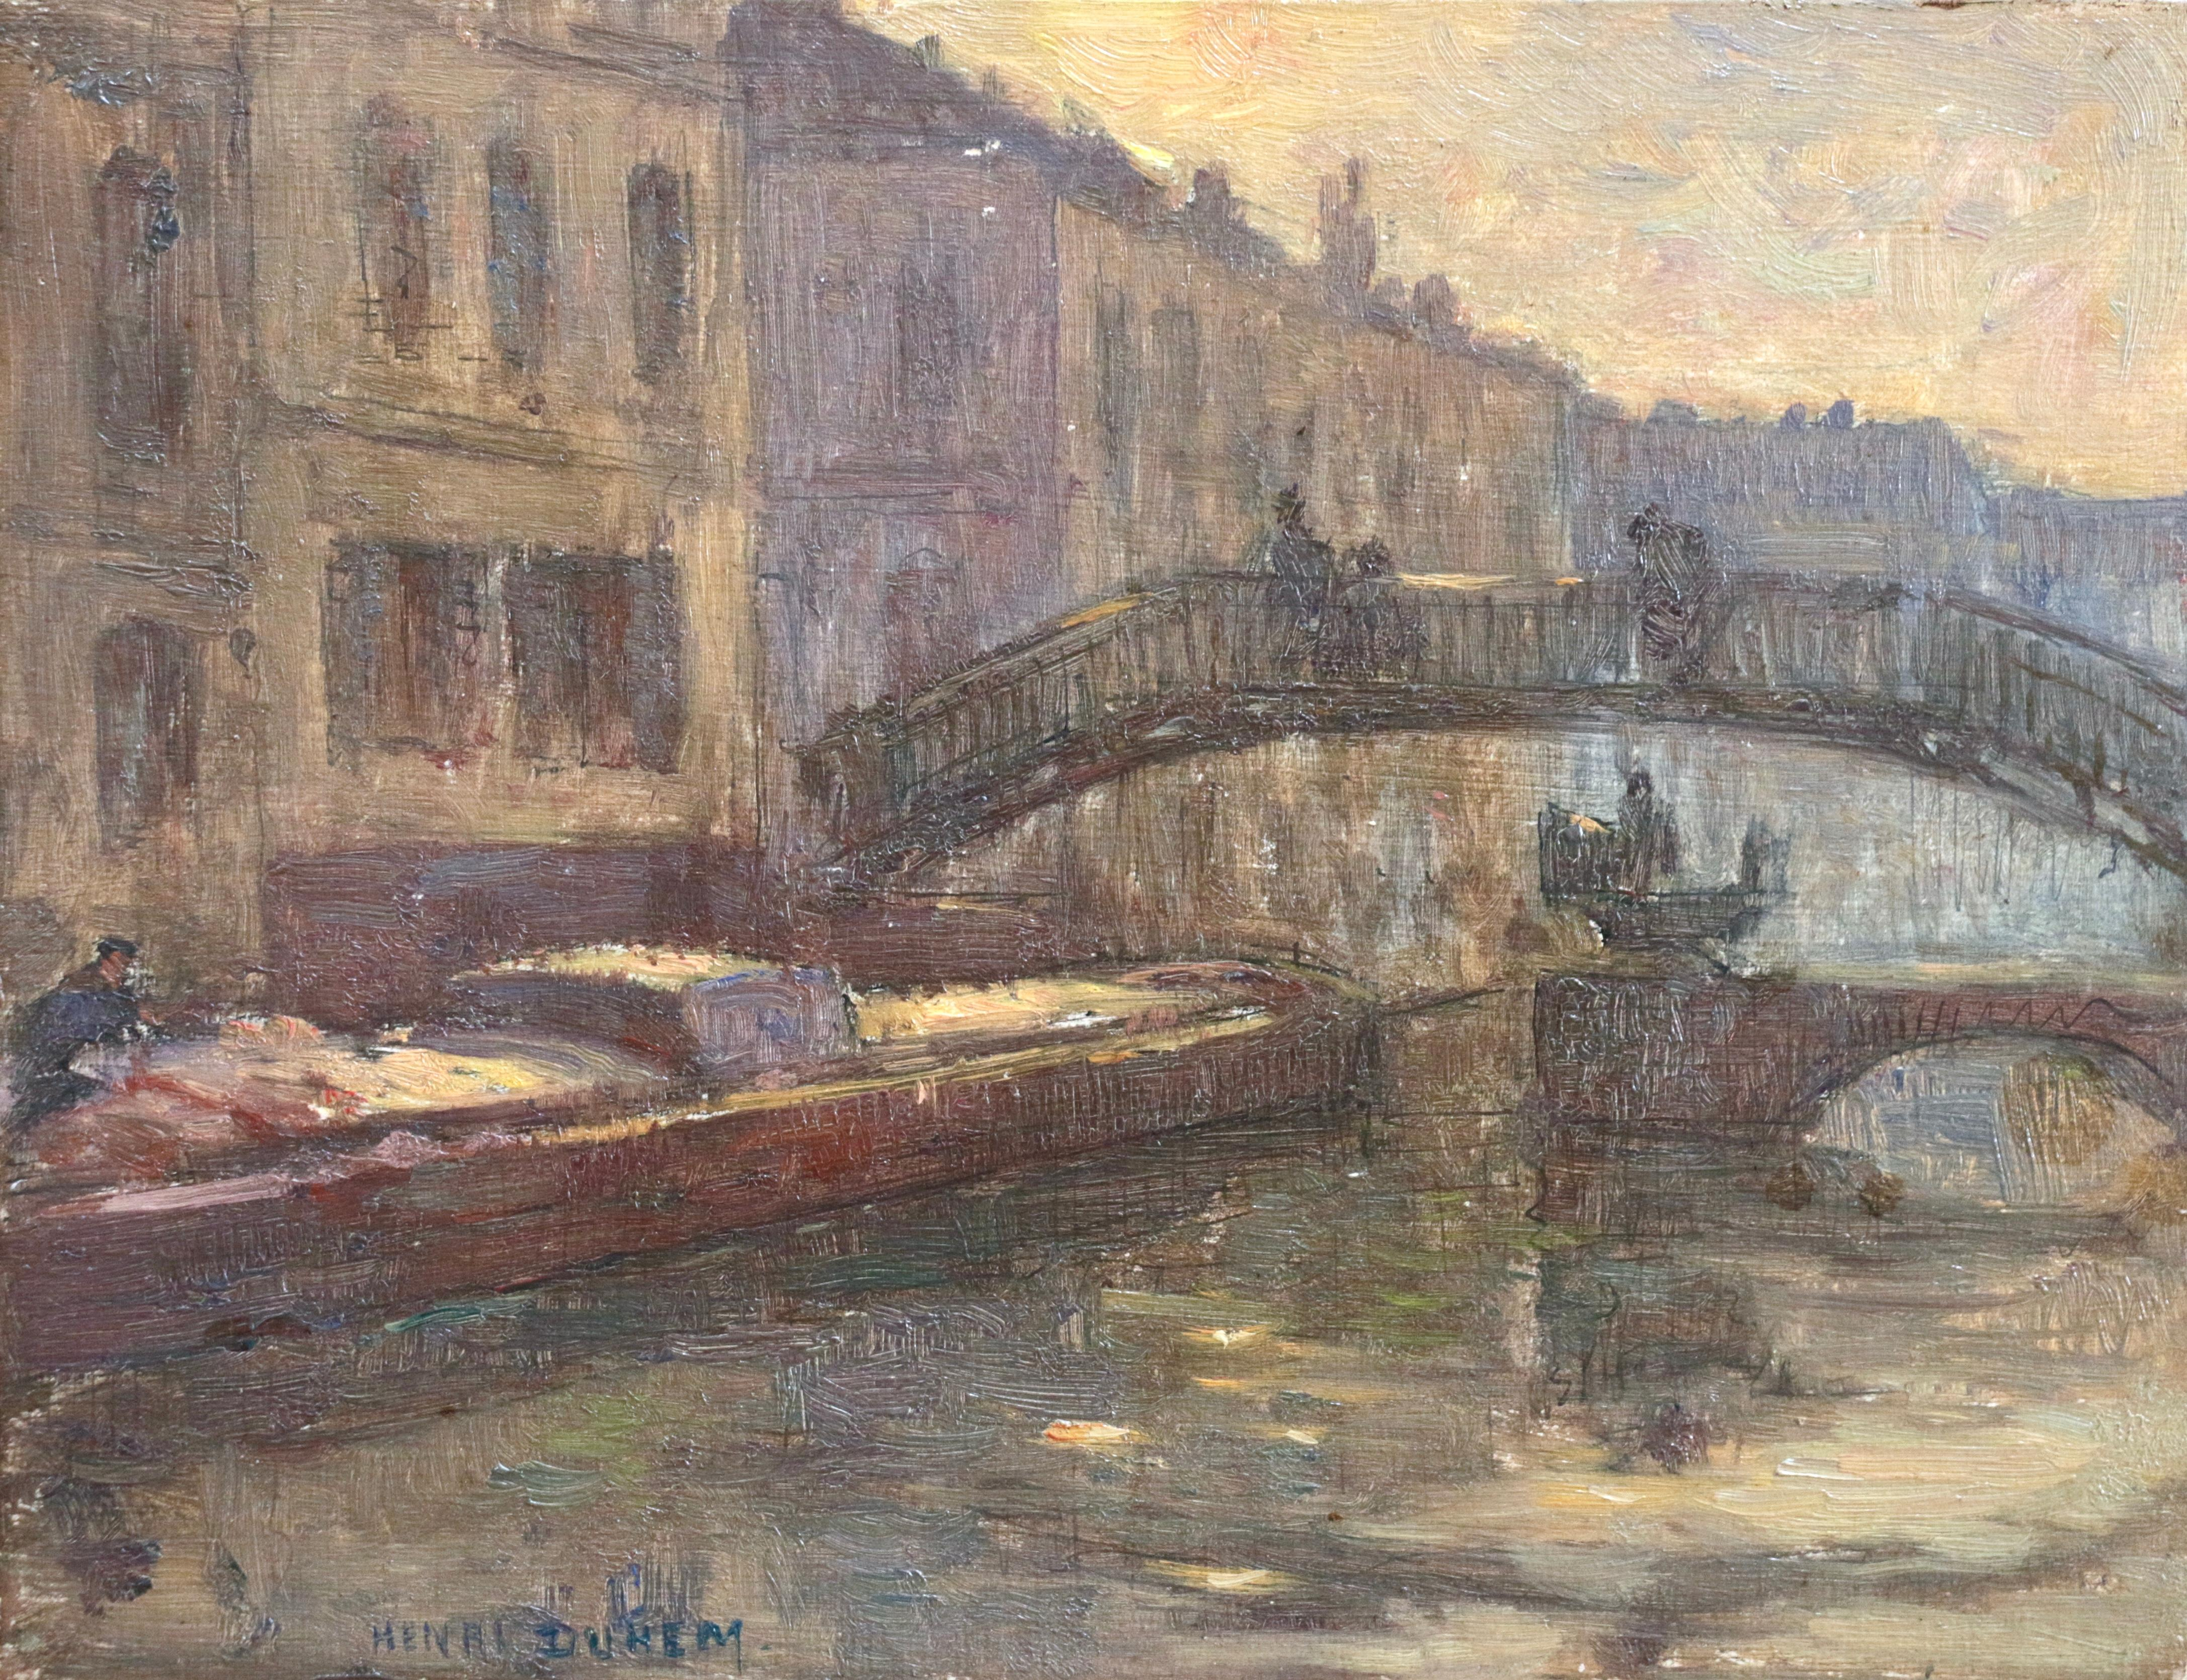 Venice - Evening - 19th Century Oil, Boats on Canal Landscape by H Duhem